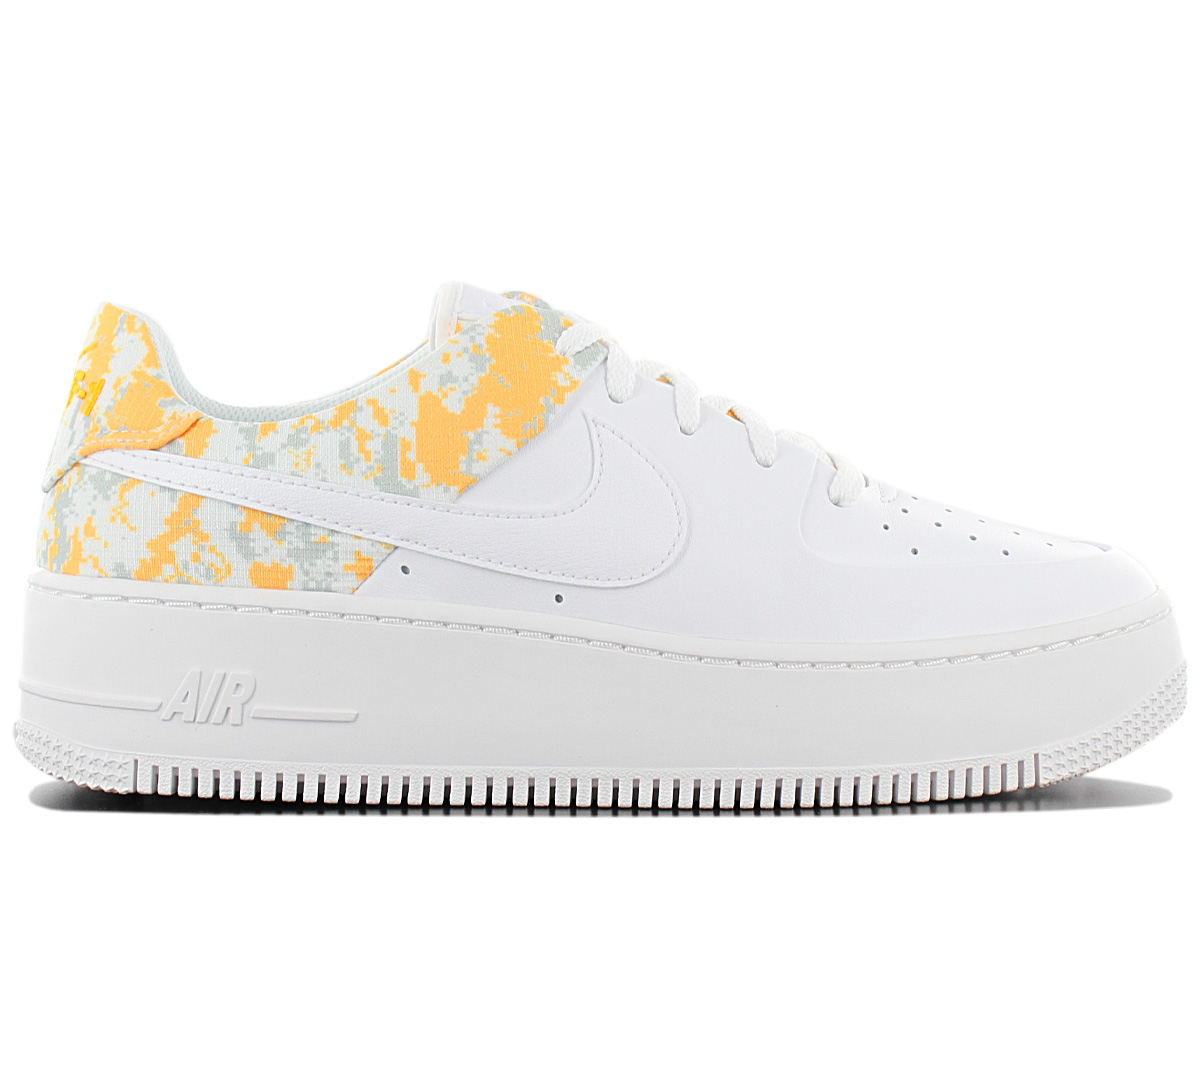 Details about Nike Air Force 1 Sage Lo Premium Sneaker CI2673 100 Leather White Fashion Shoes